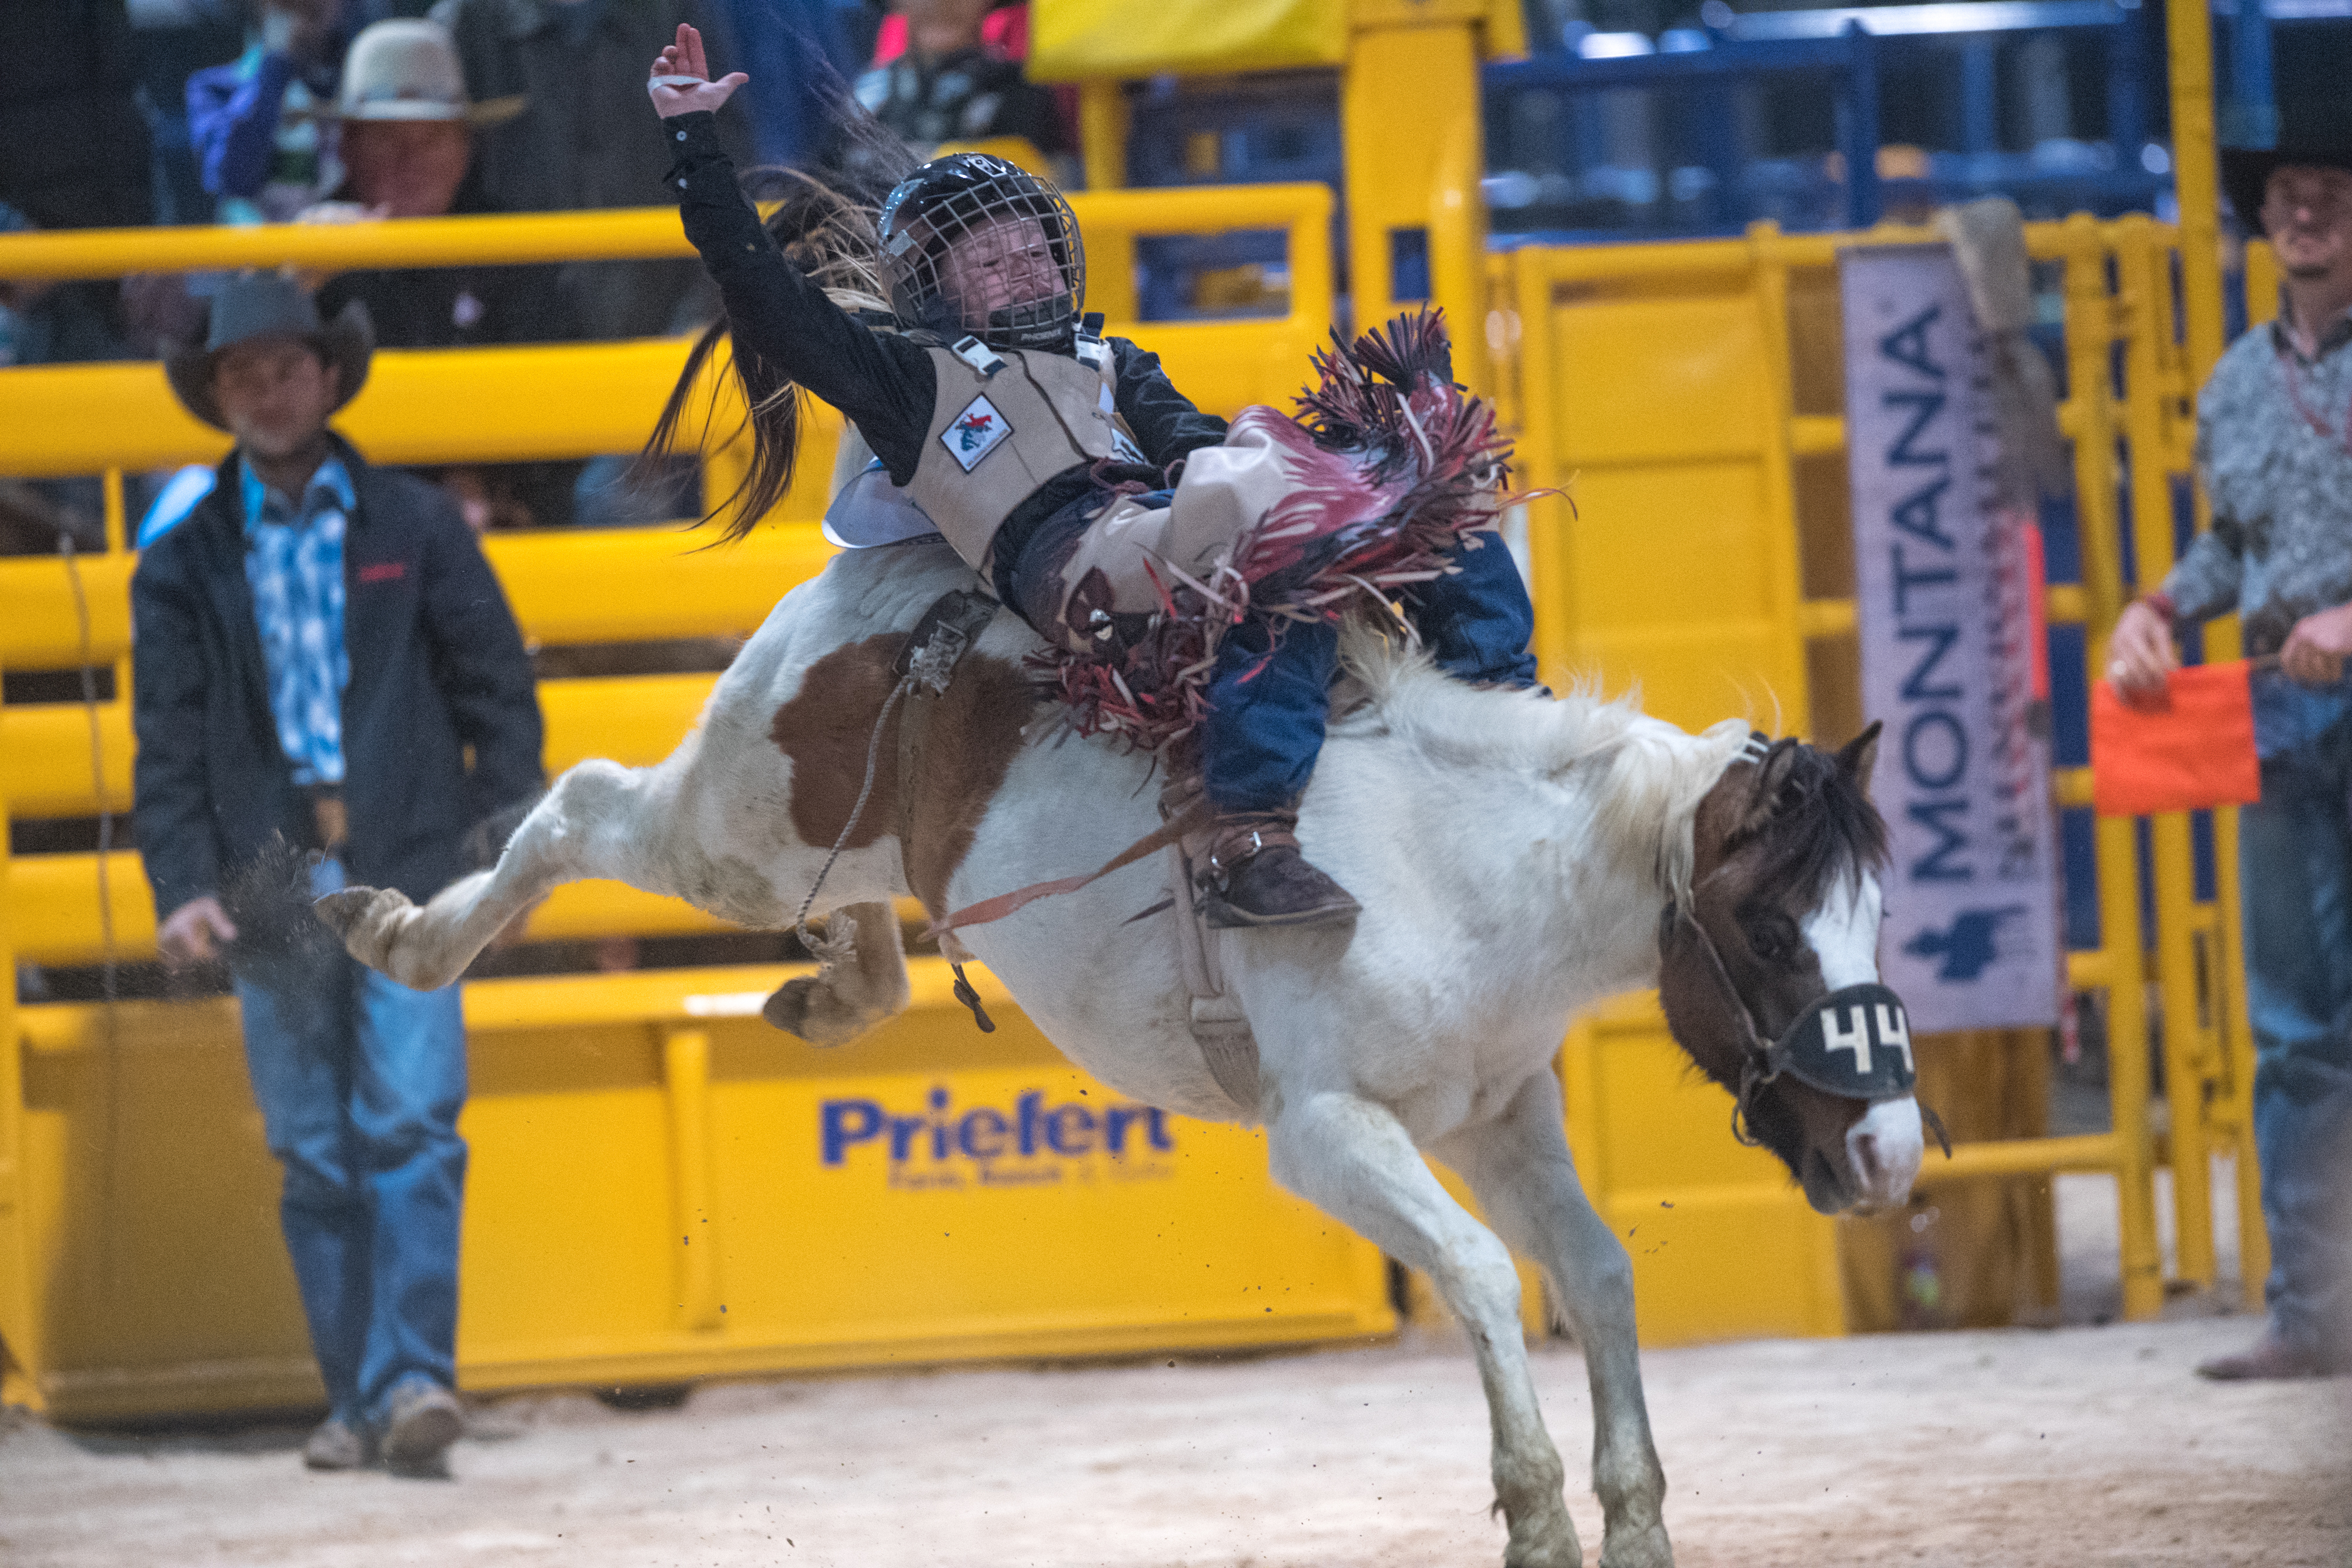 Junior Nfr Inside The Wrangler Rodeo Arena At Cowboy